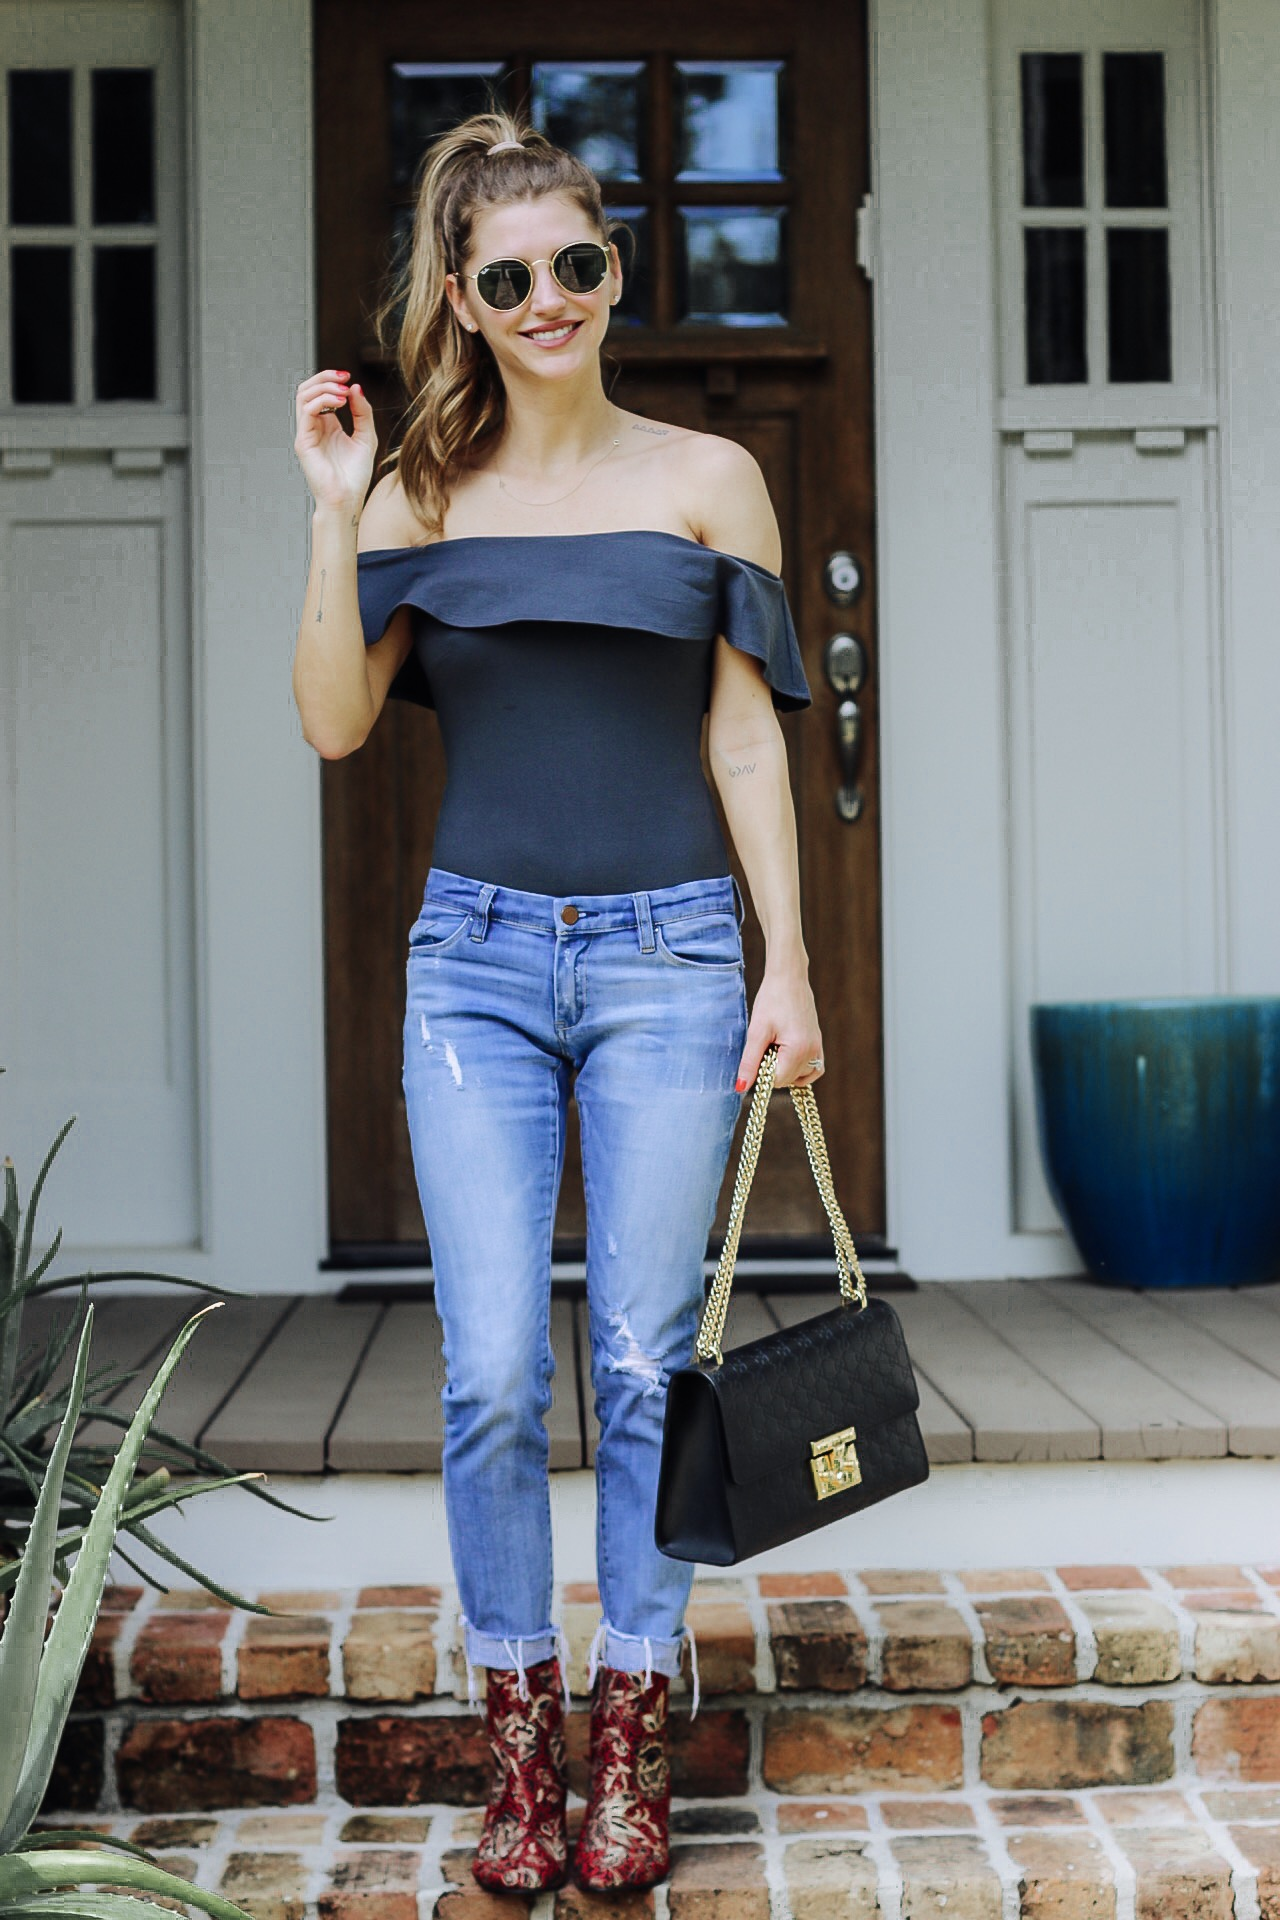 off the shoulder top with distressed jeans and Mark and Spencer boots